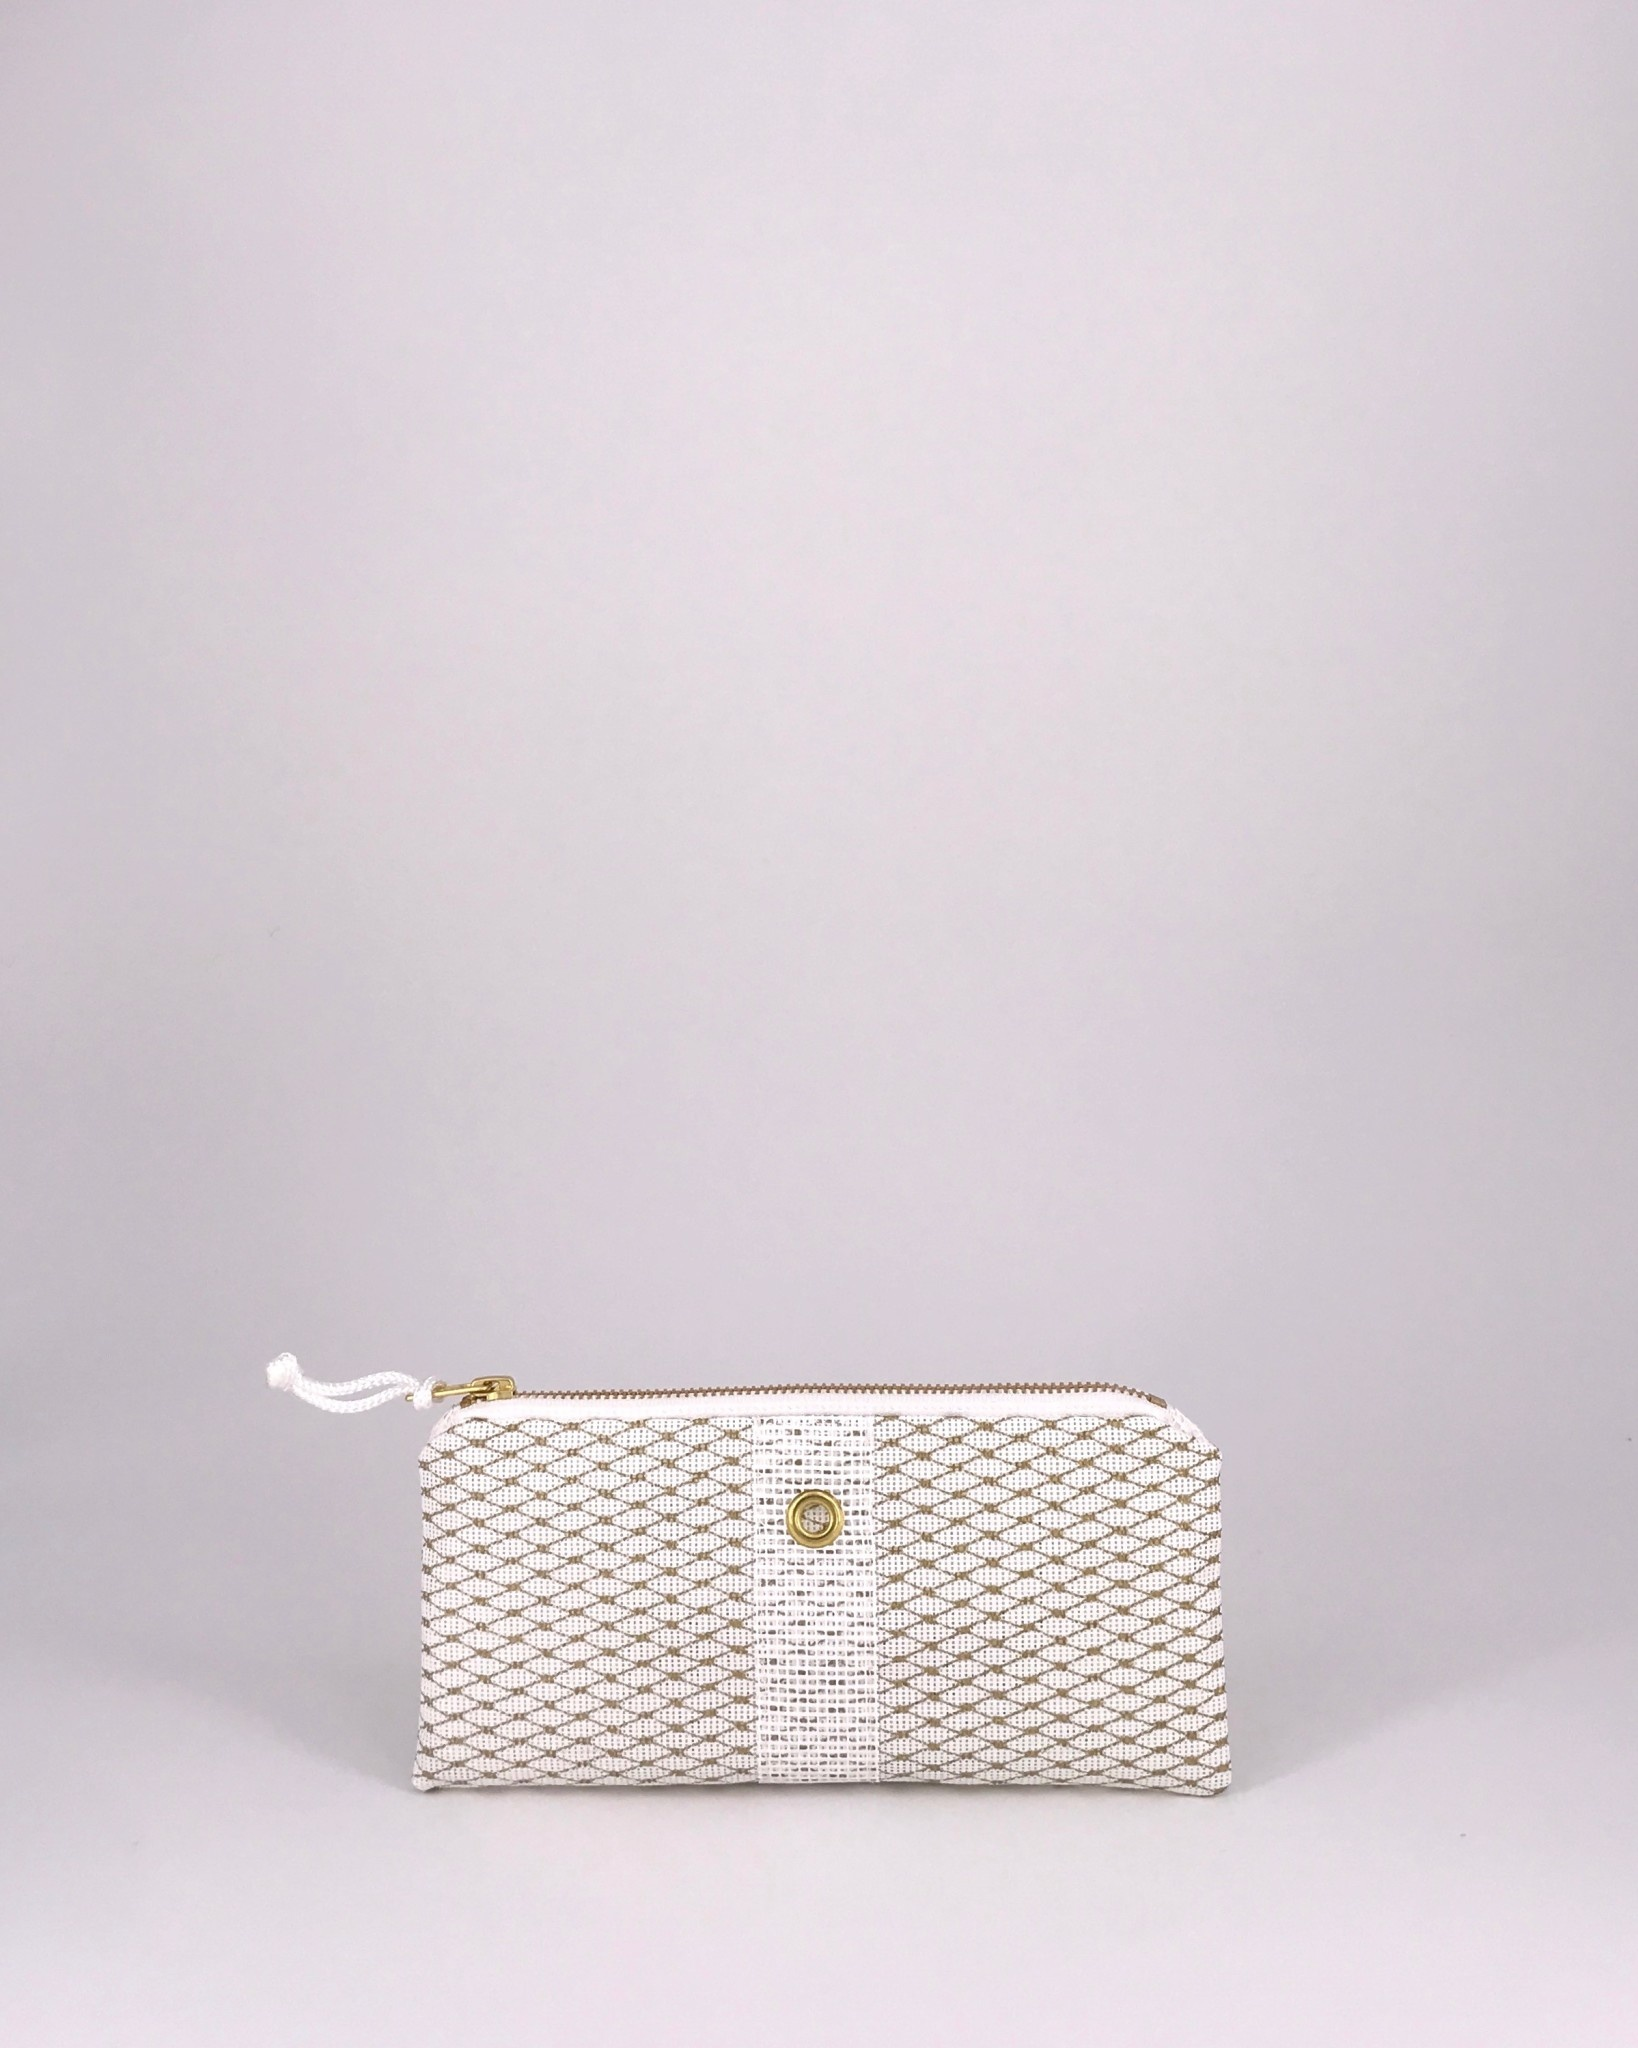 Alaina Marie ® Mini Gold Metallic on White & White Mini Clutch